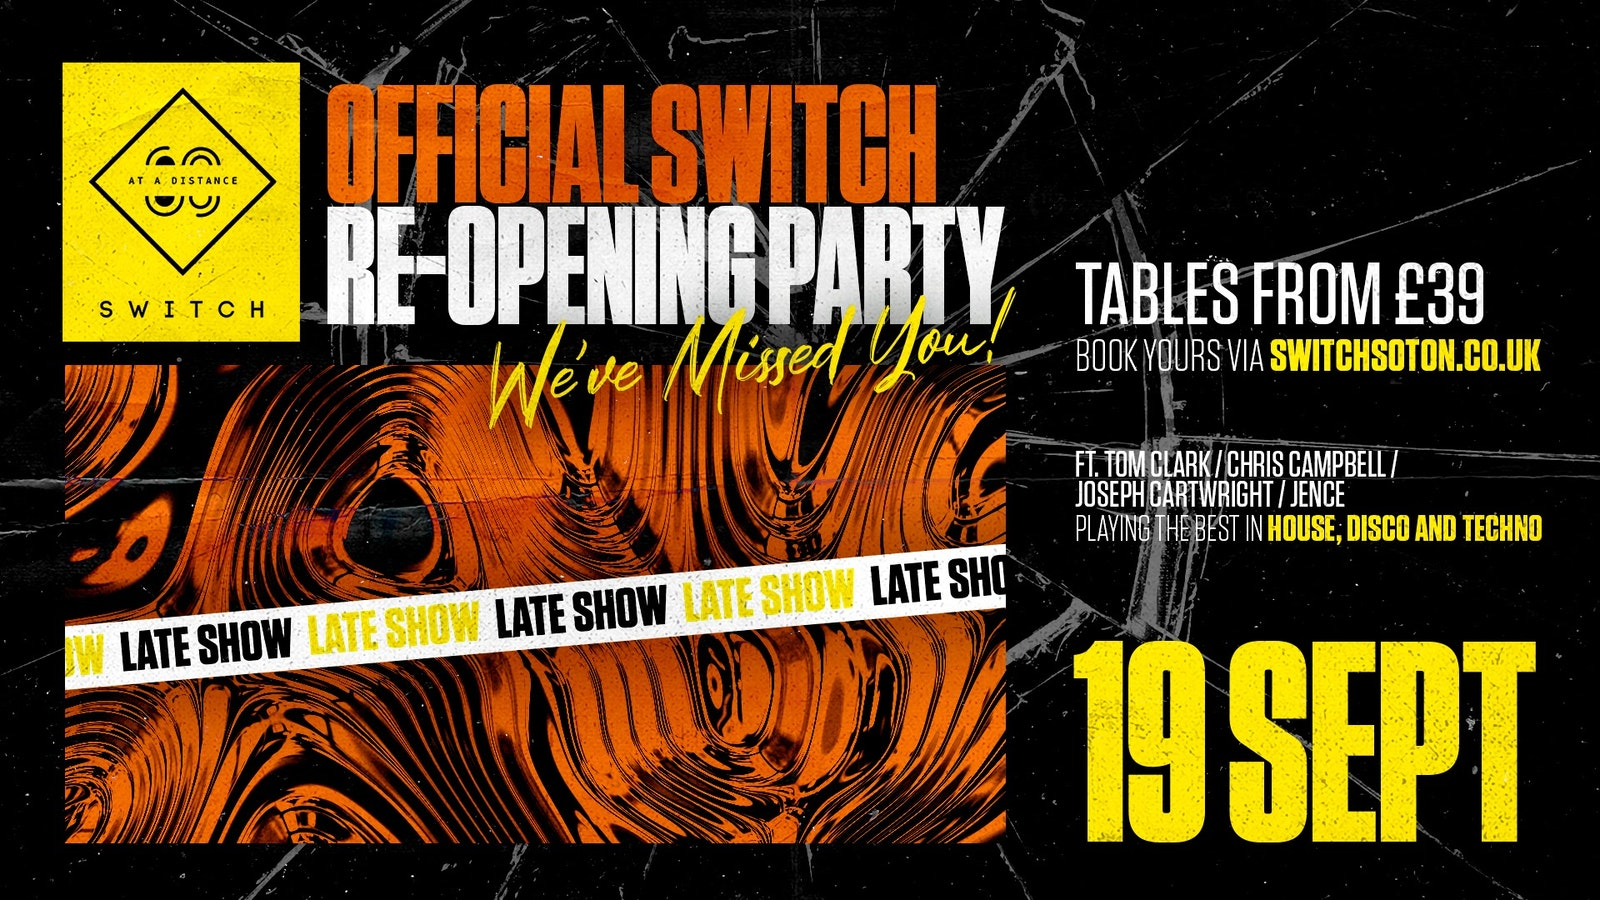 Official Switch Re-opening Party